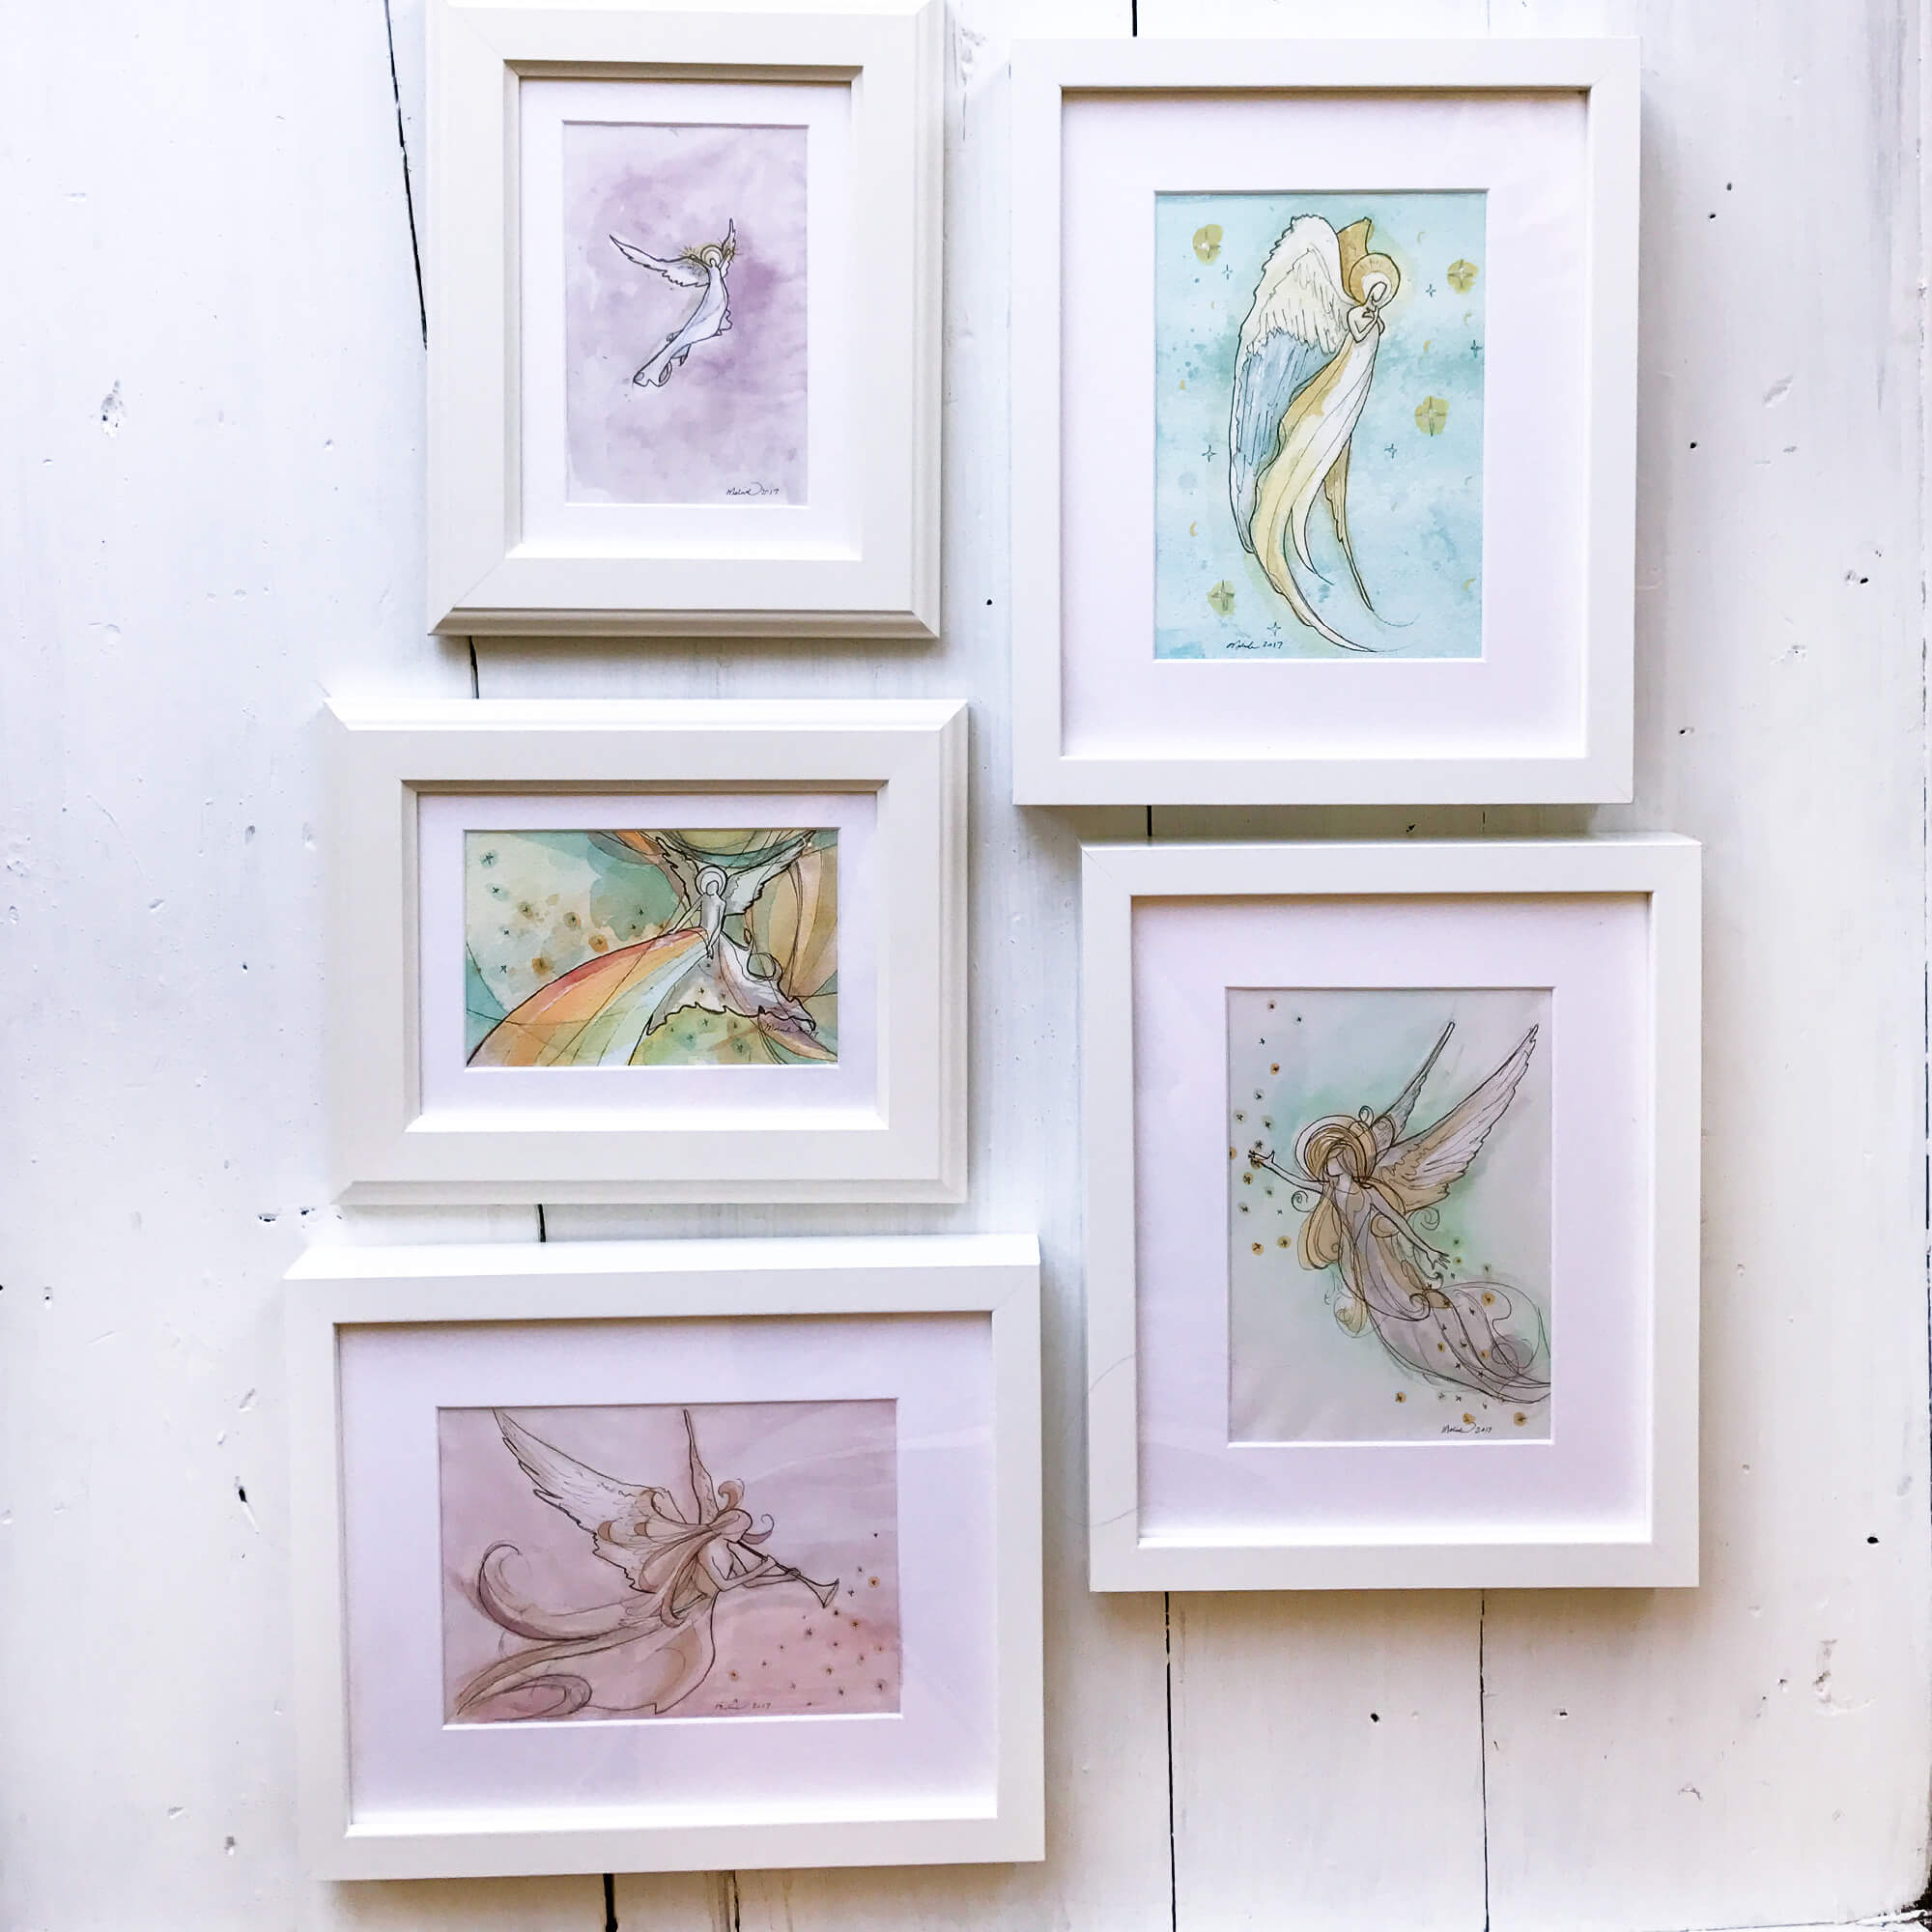 Framed and signed watercolor sketches will be for sale.A cute addition to a nursery or kiddo room. $45 - $75